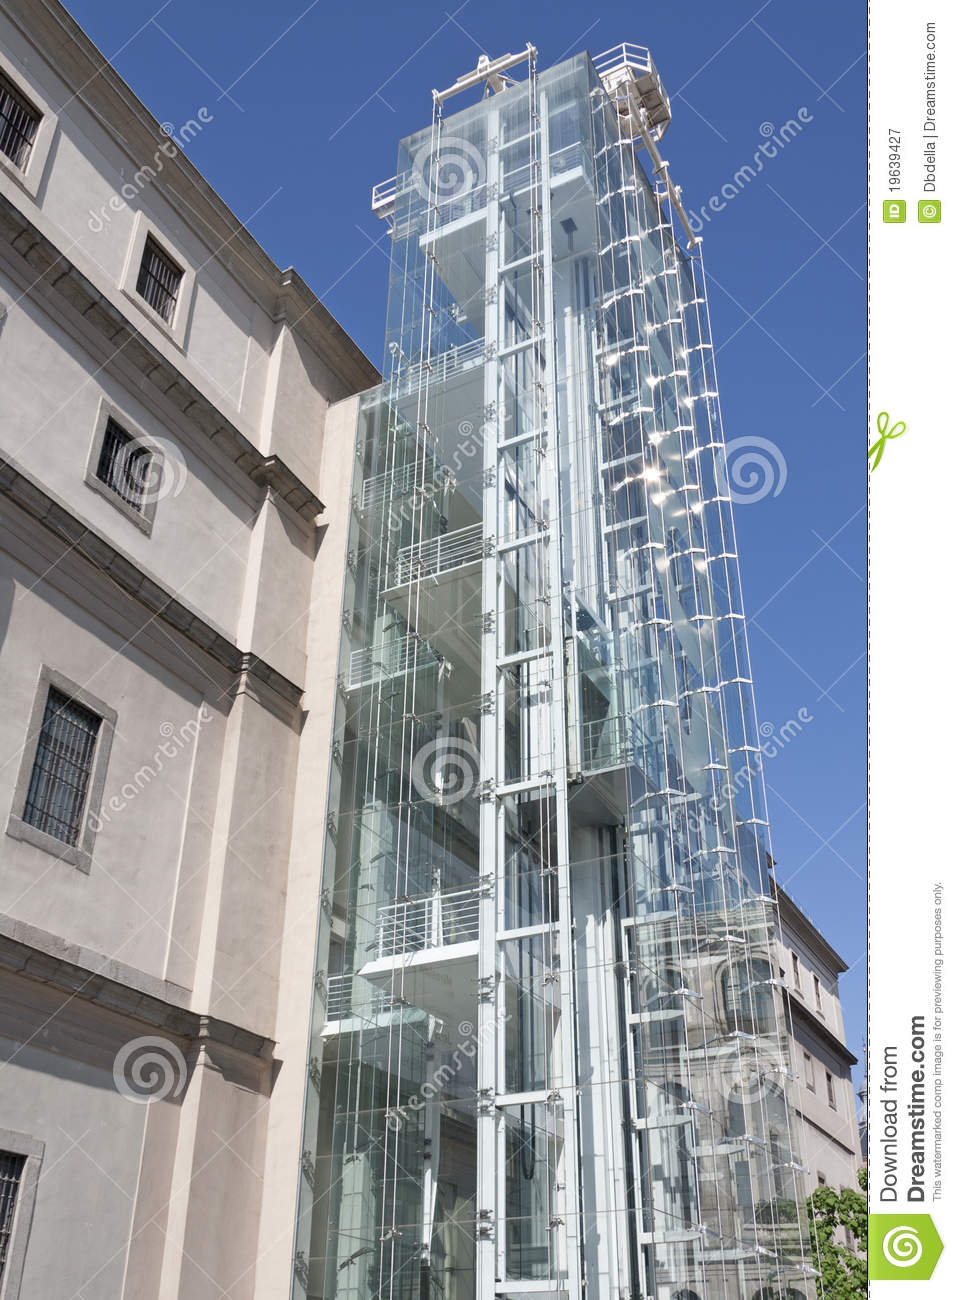 Detail Of Centro De Arte Reina Sofia In Madrid Editorial Photography - Image:...